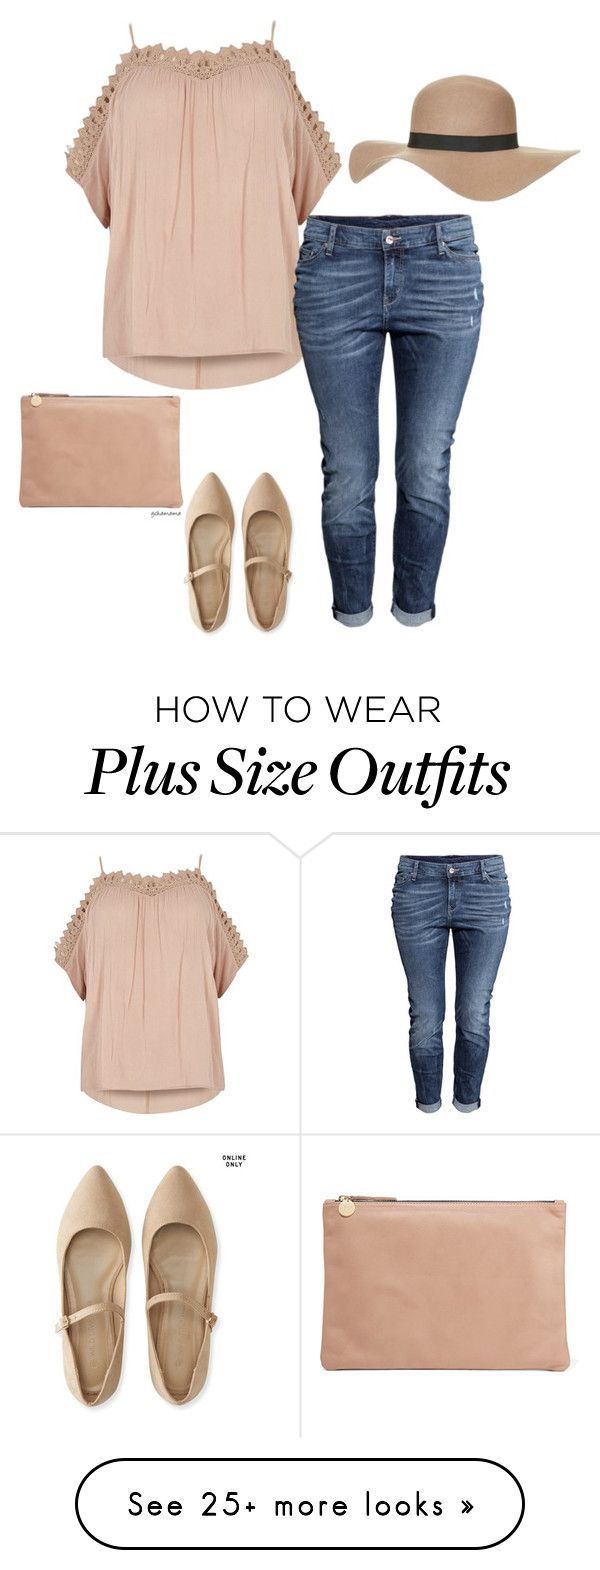 "Cool Girl Summer Outfits ""Calm down- plus size"" by gchamama on Polyvore featuring River Island,... Check more at http://24store.ml/fashion/girl-summer-outfits-calm-down-plus-size-by-gchamama-on-polyvore-featuring-river-island/"